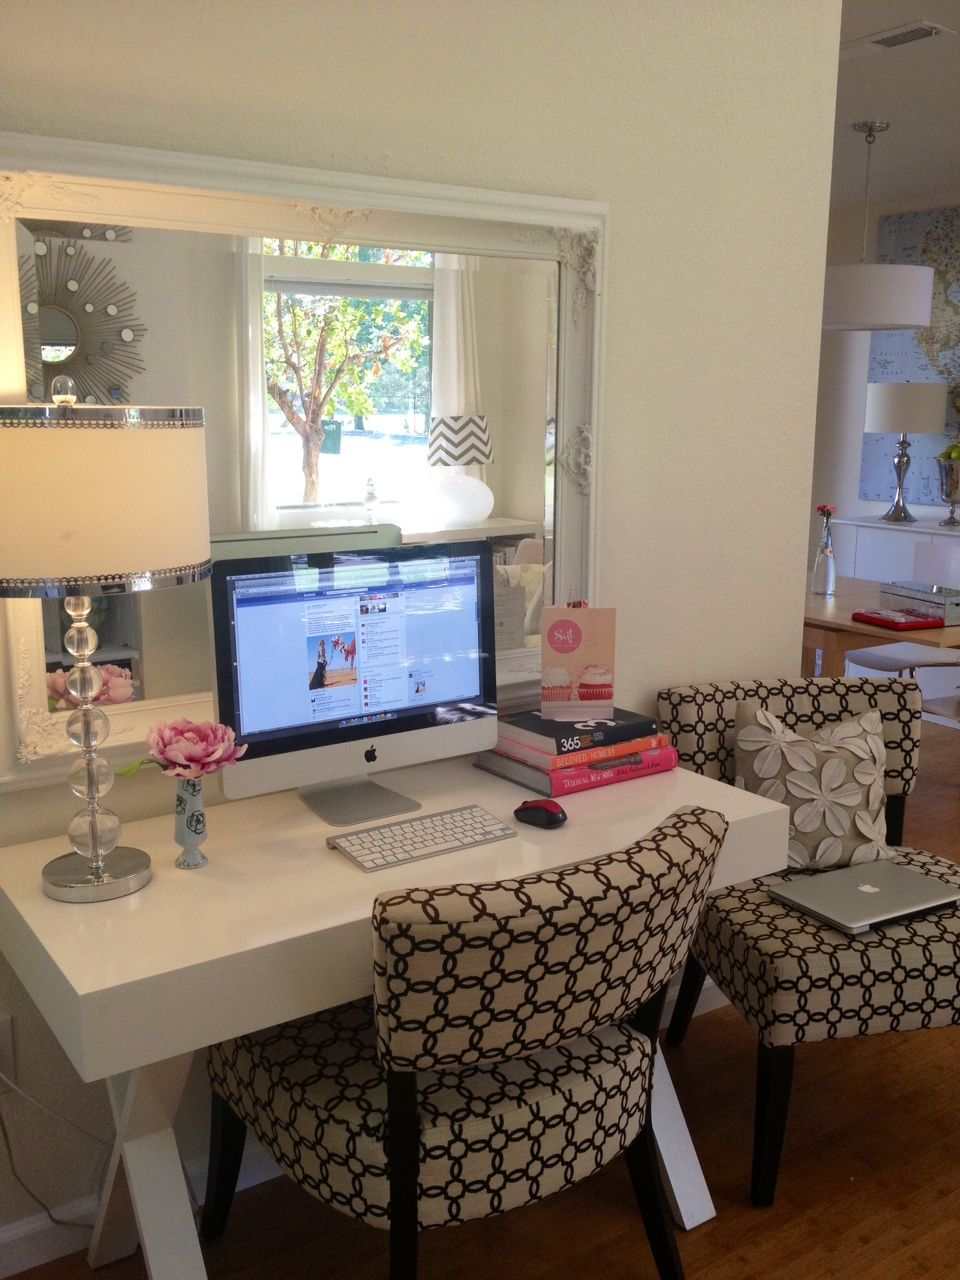 Design Home Office The Desk Would Look Good In A Makeup Or Hair Area In A Bedroom Or Large Bathroom Home Office Decor Home Decor Home Office Design